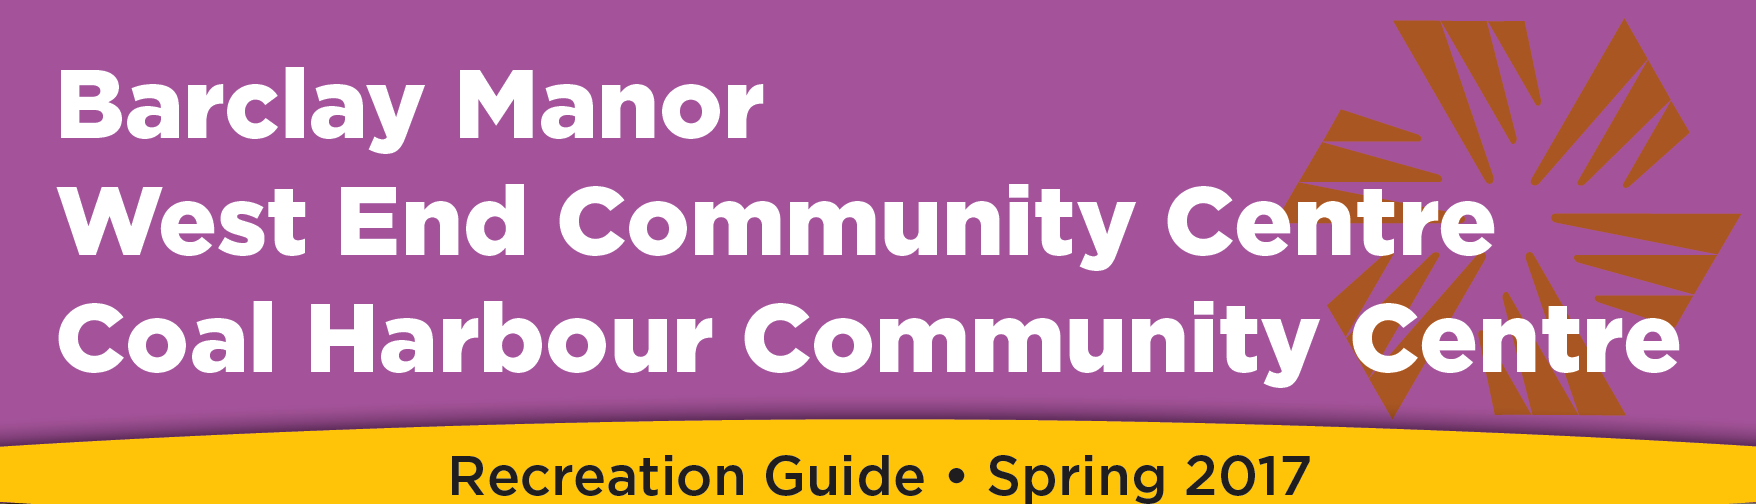 Community Centres Vancouver - spring program guide 2017